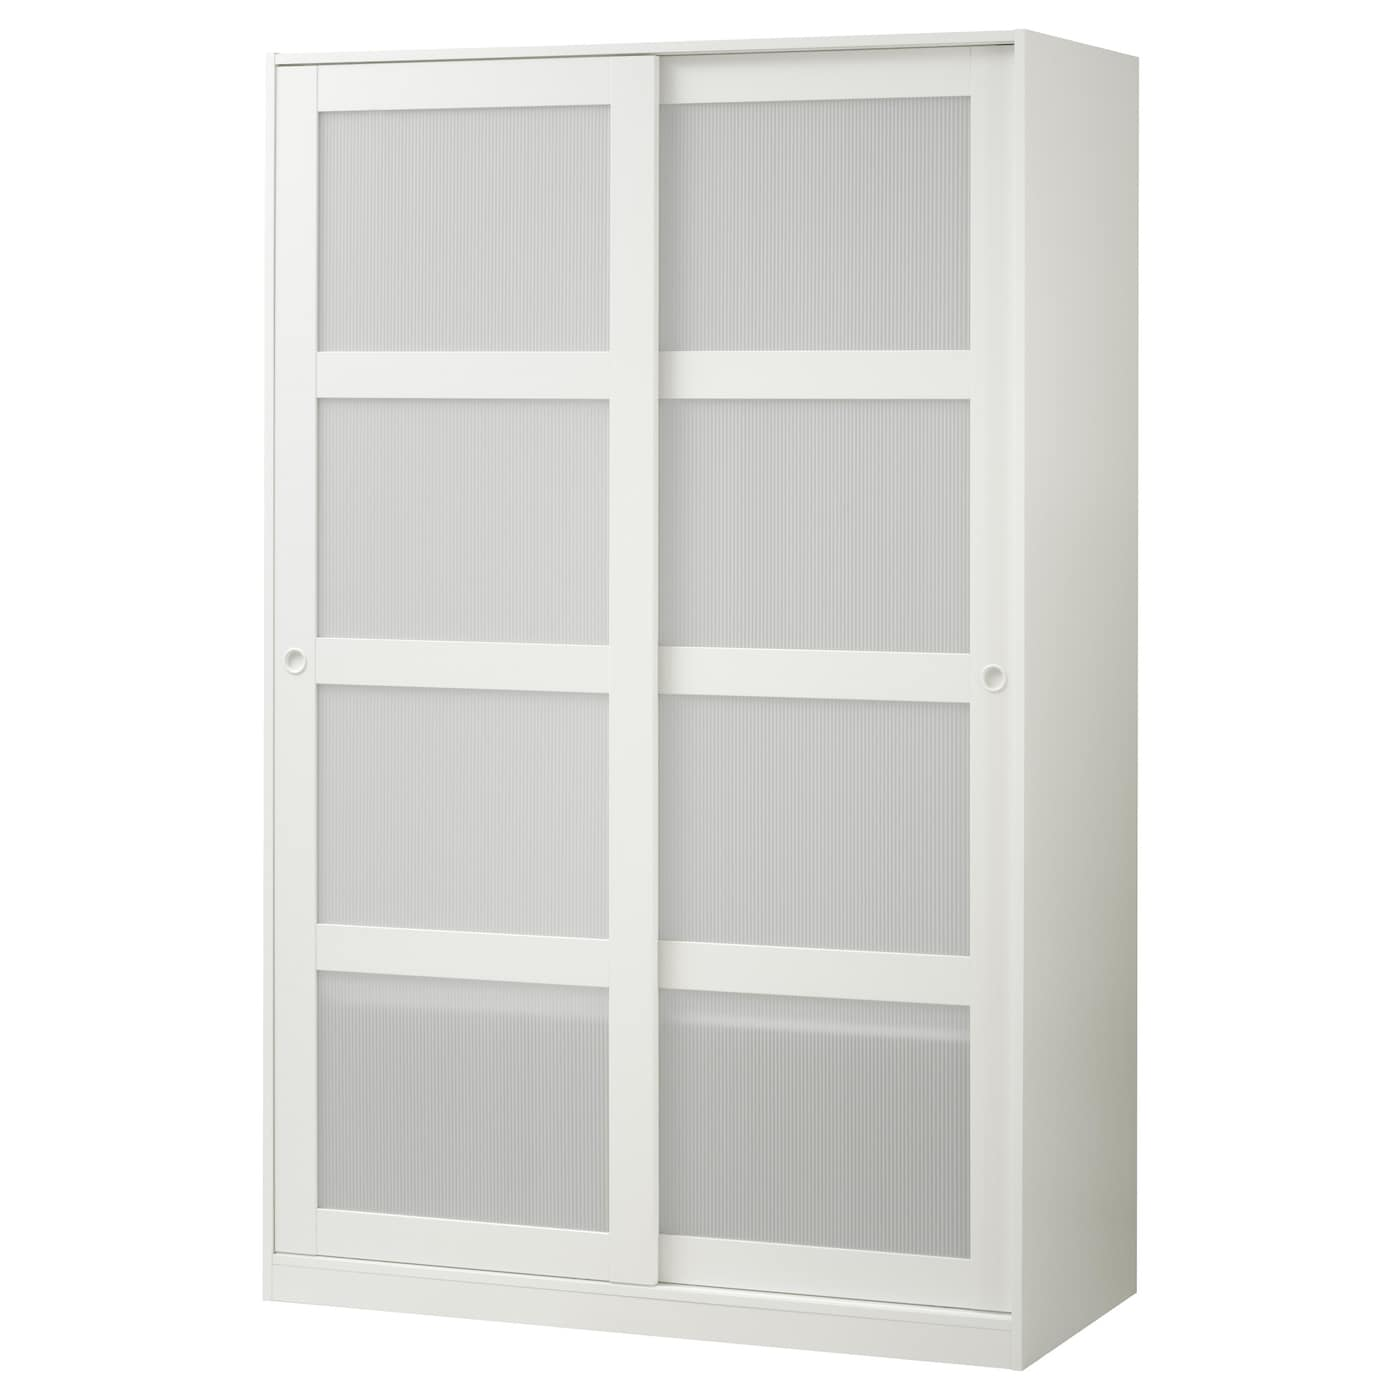 Exceptionnel IKEA KVIKNE Wardrobe With 2 Sliding Doors Customise The Space With The  Adjustable Shelf.